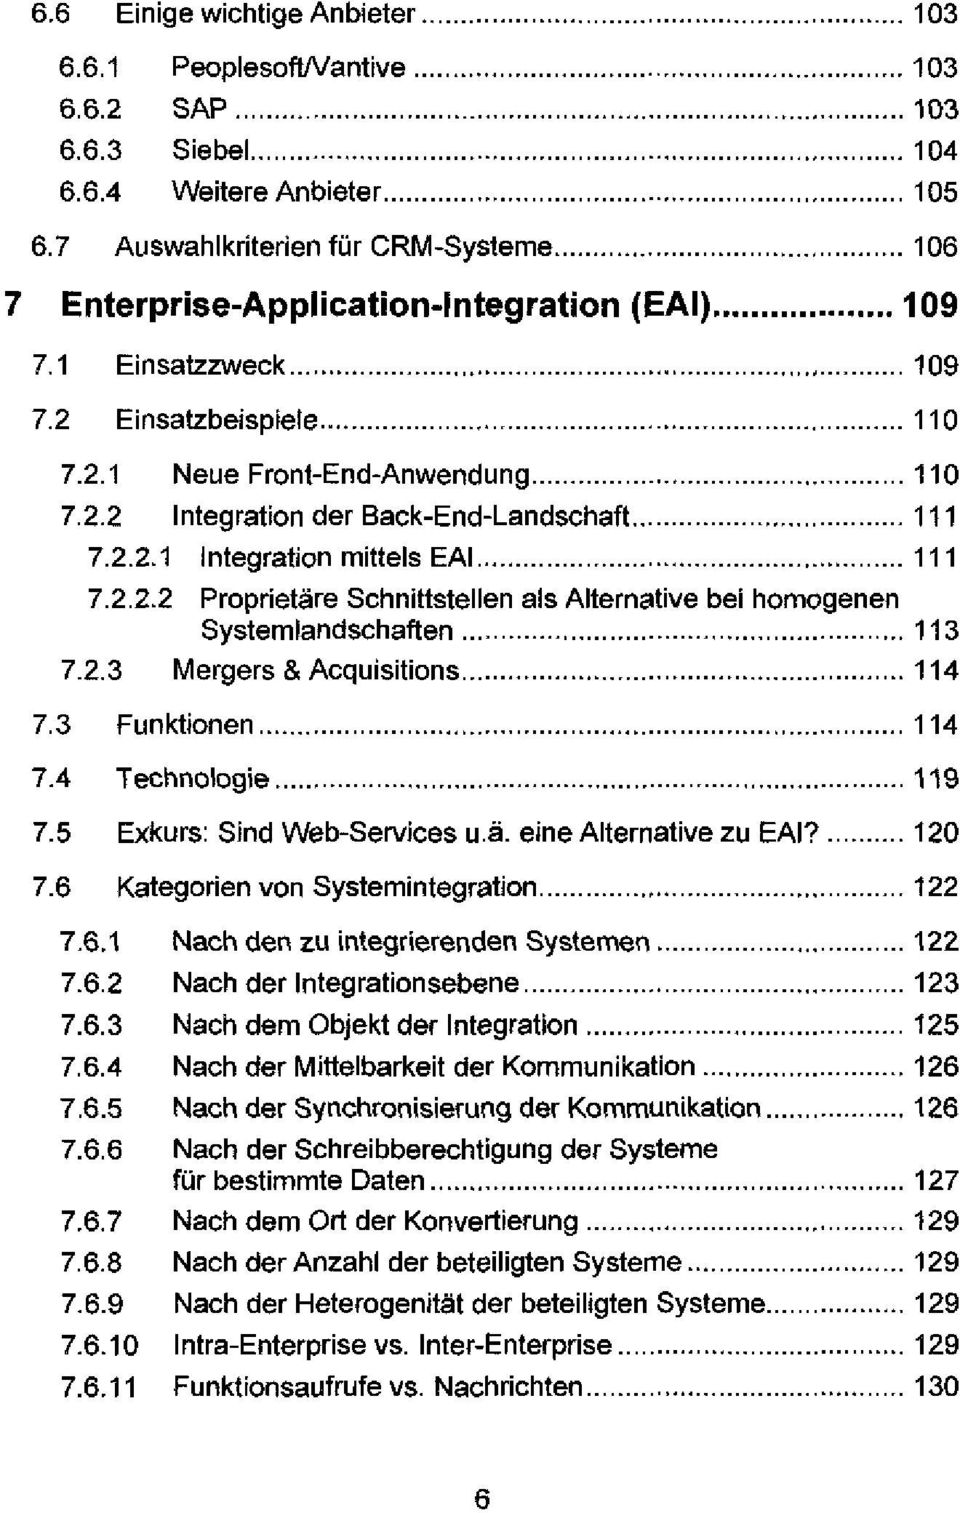 2.2.1 Integration mittels EAI 111 7.2.2.2 Proprietäre Schnittstellen als Alternative bei homogenen Systemlandschaften 113 7.2.3 Mergers & Acquisitions 114 7.3 Funktionen 114 7.4 Technologie 119 7.